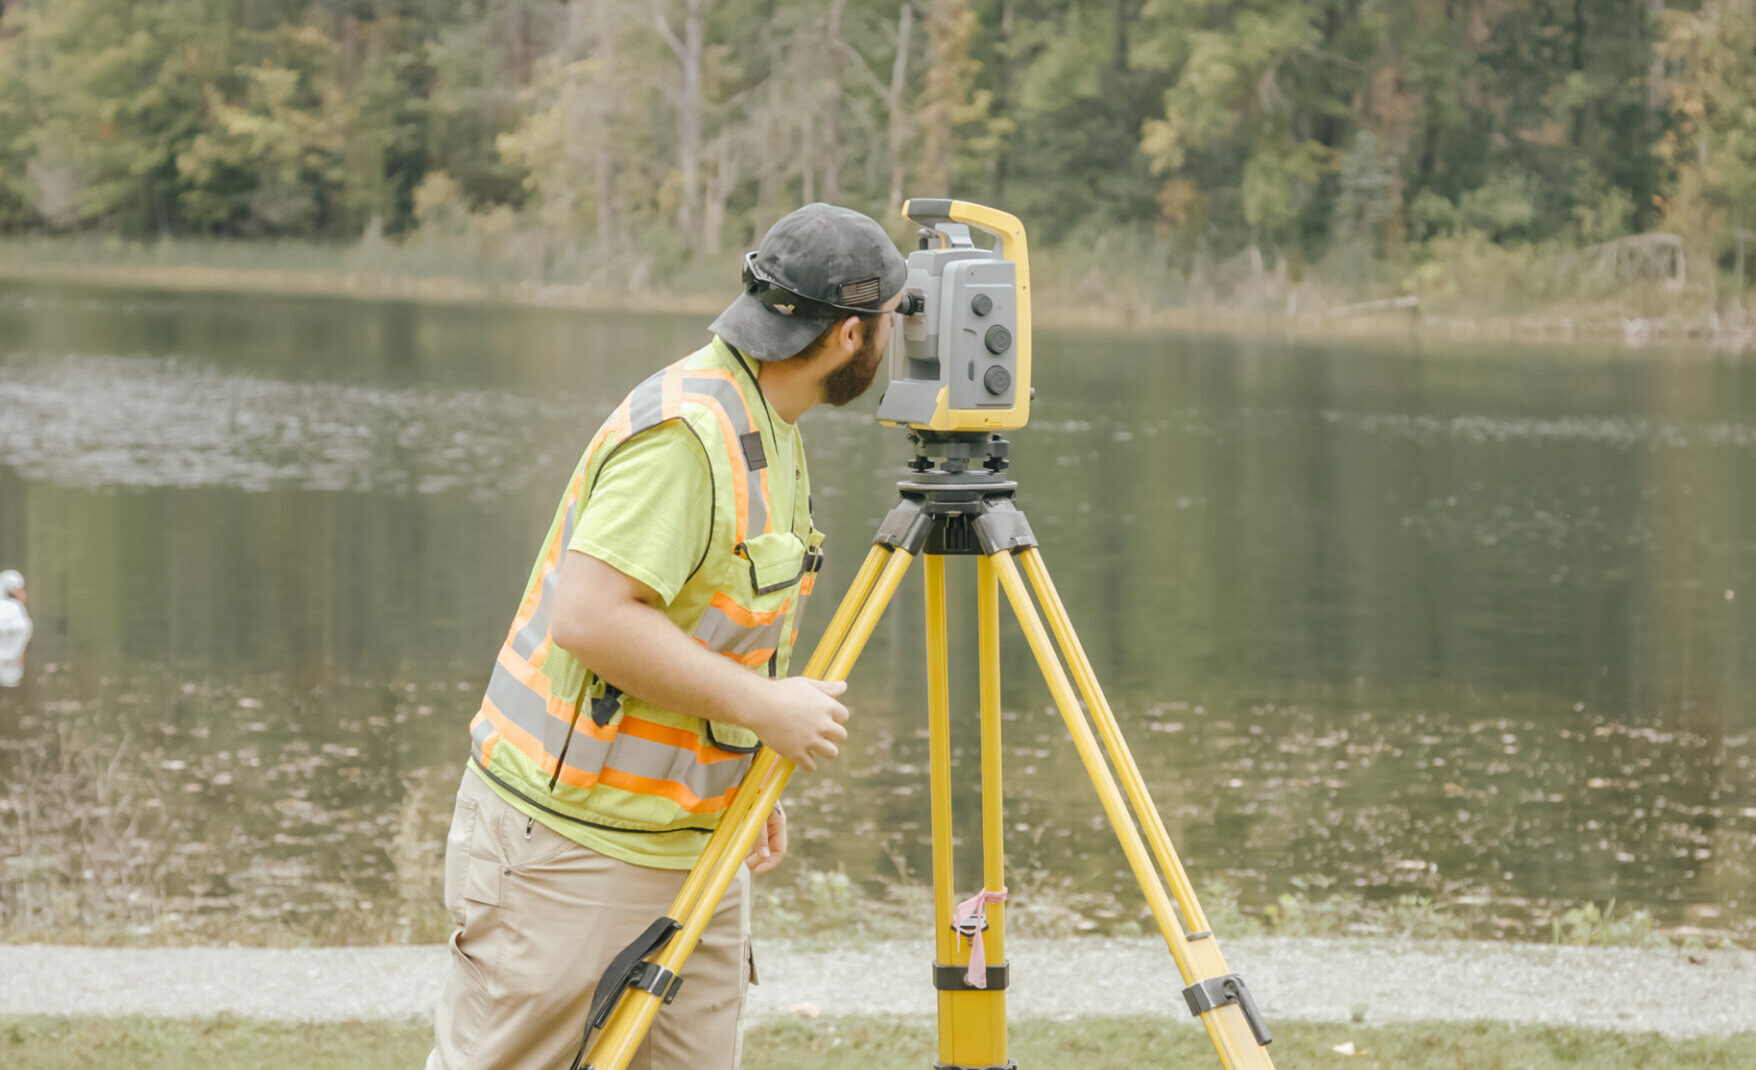 Surveyer using surveying equipent to survey a river